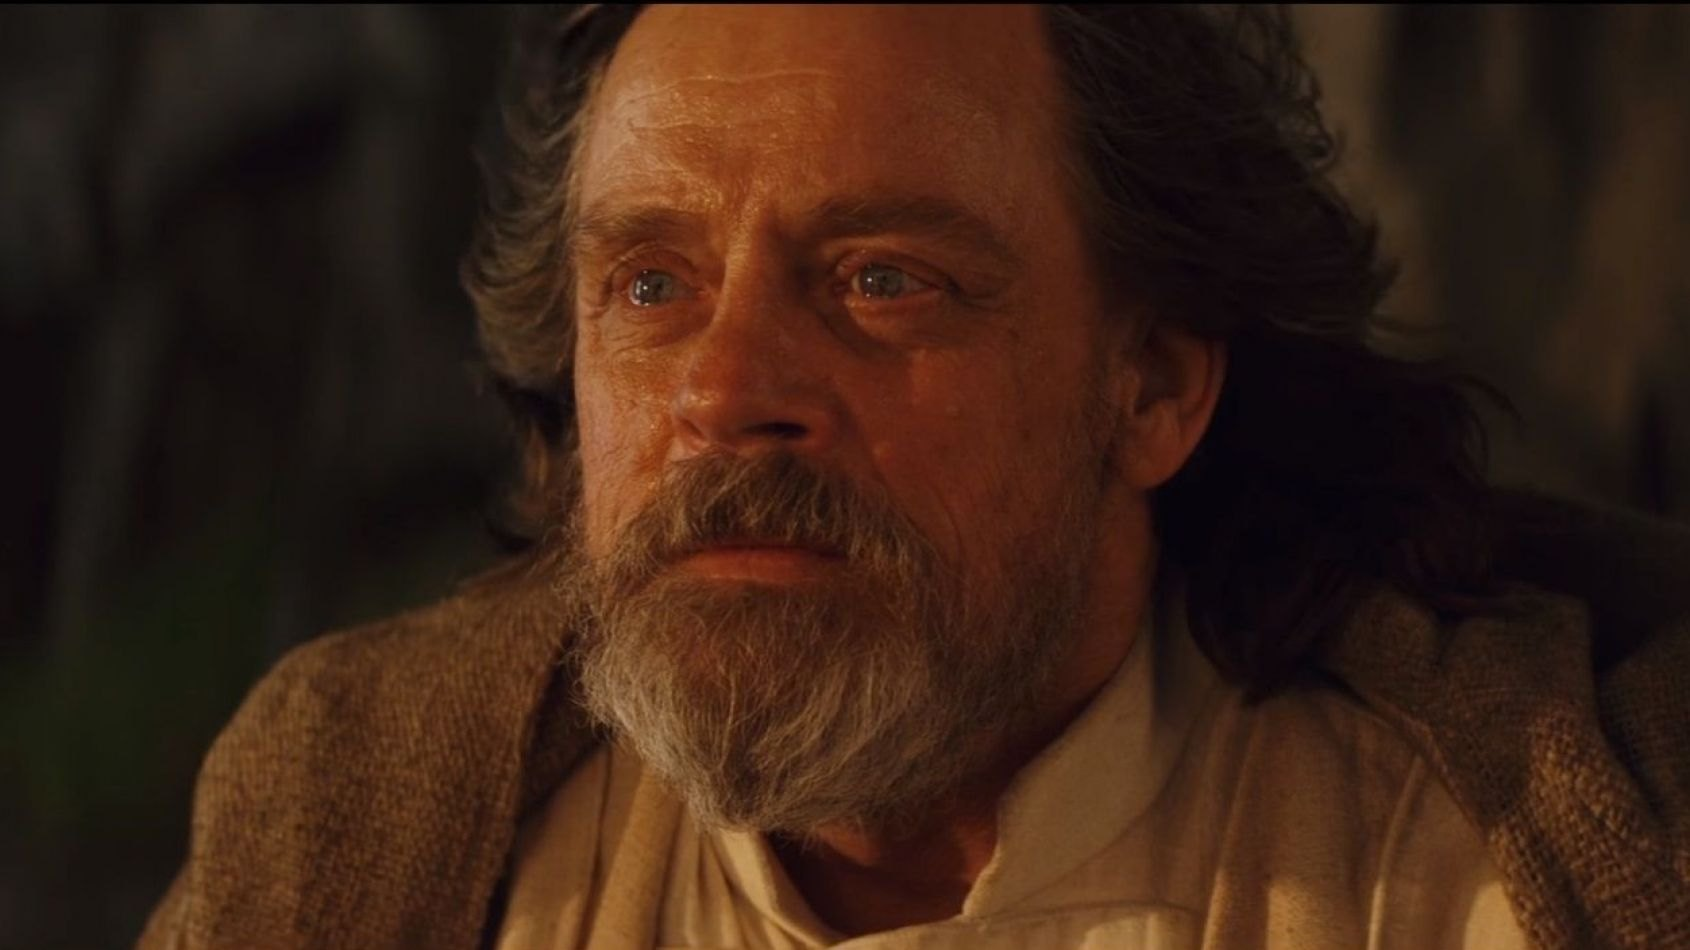 Selon Mark Hamill le retour de Luke Skywalker dépend de J.J. Abrams